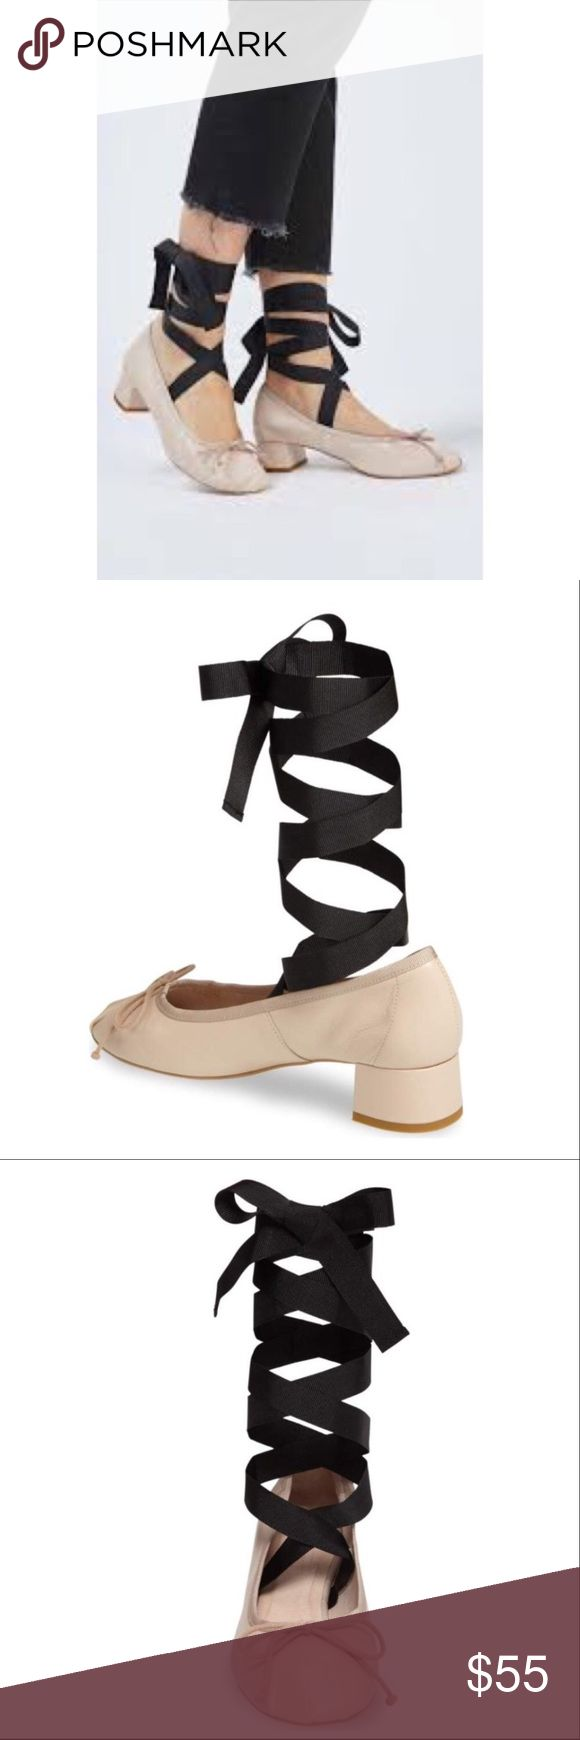 Topshop Kan-Kan Ankle Tie Pump 8.5 NWT Wide grosgrain ribbons wrap around your ankle and extend nearly to your knee for a super chic, ballerina-inspired look on a block-heel pump crafted in Spain. Unworn, NWT. Size 39 Euro.= 8 1/2 US. Color is nude. Topshop Shoes